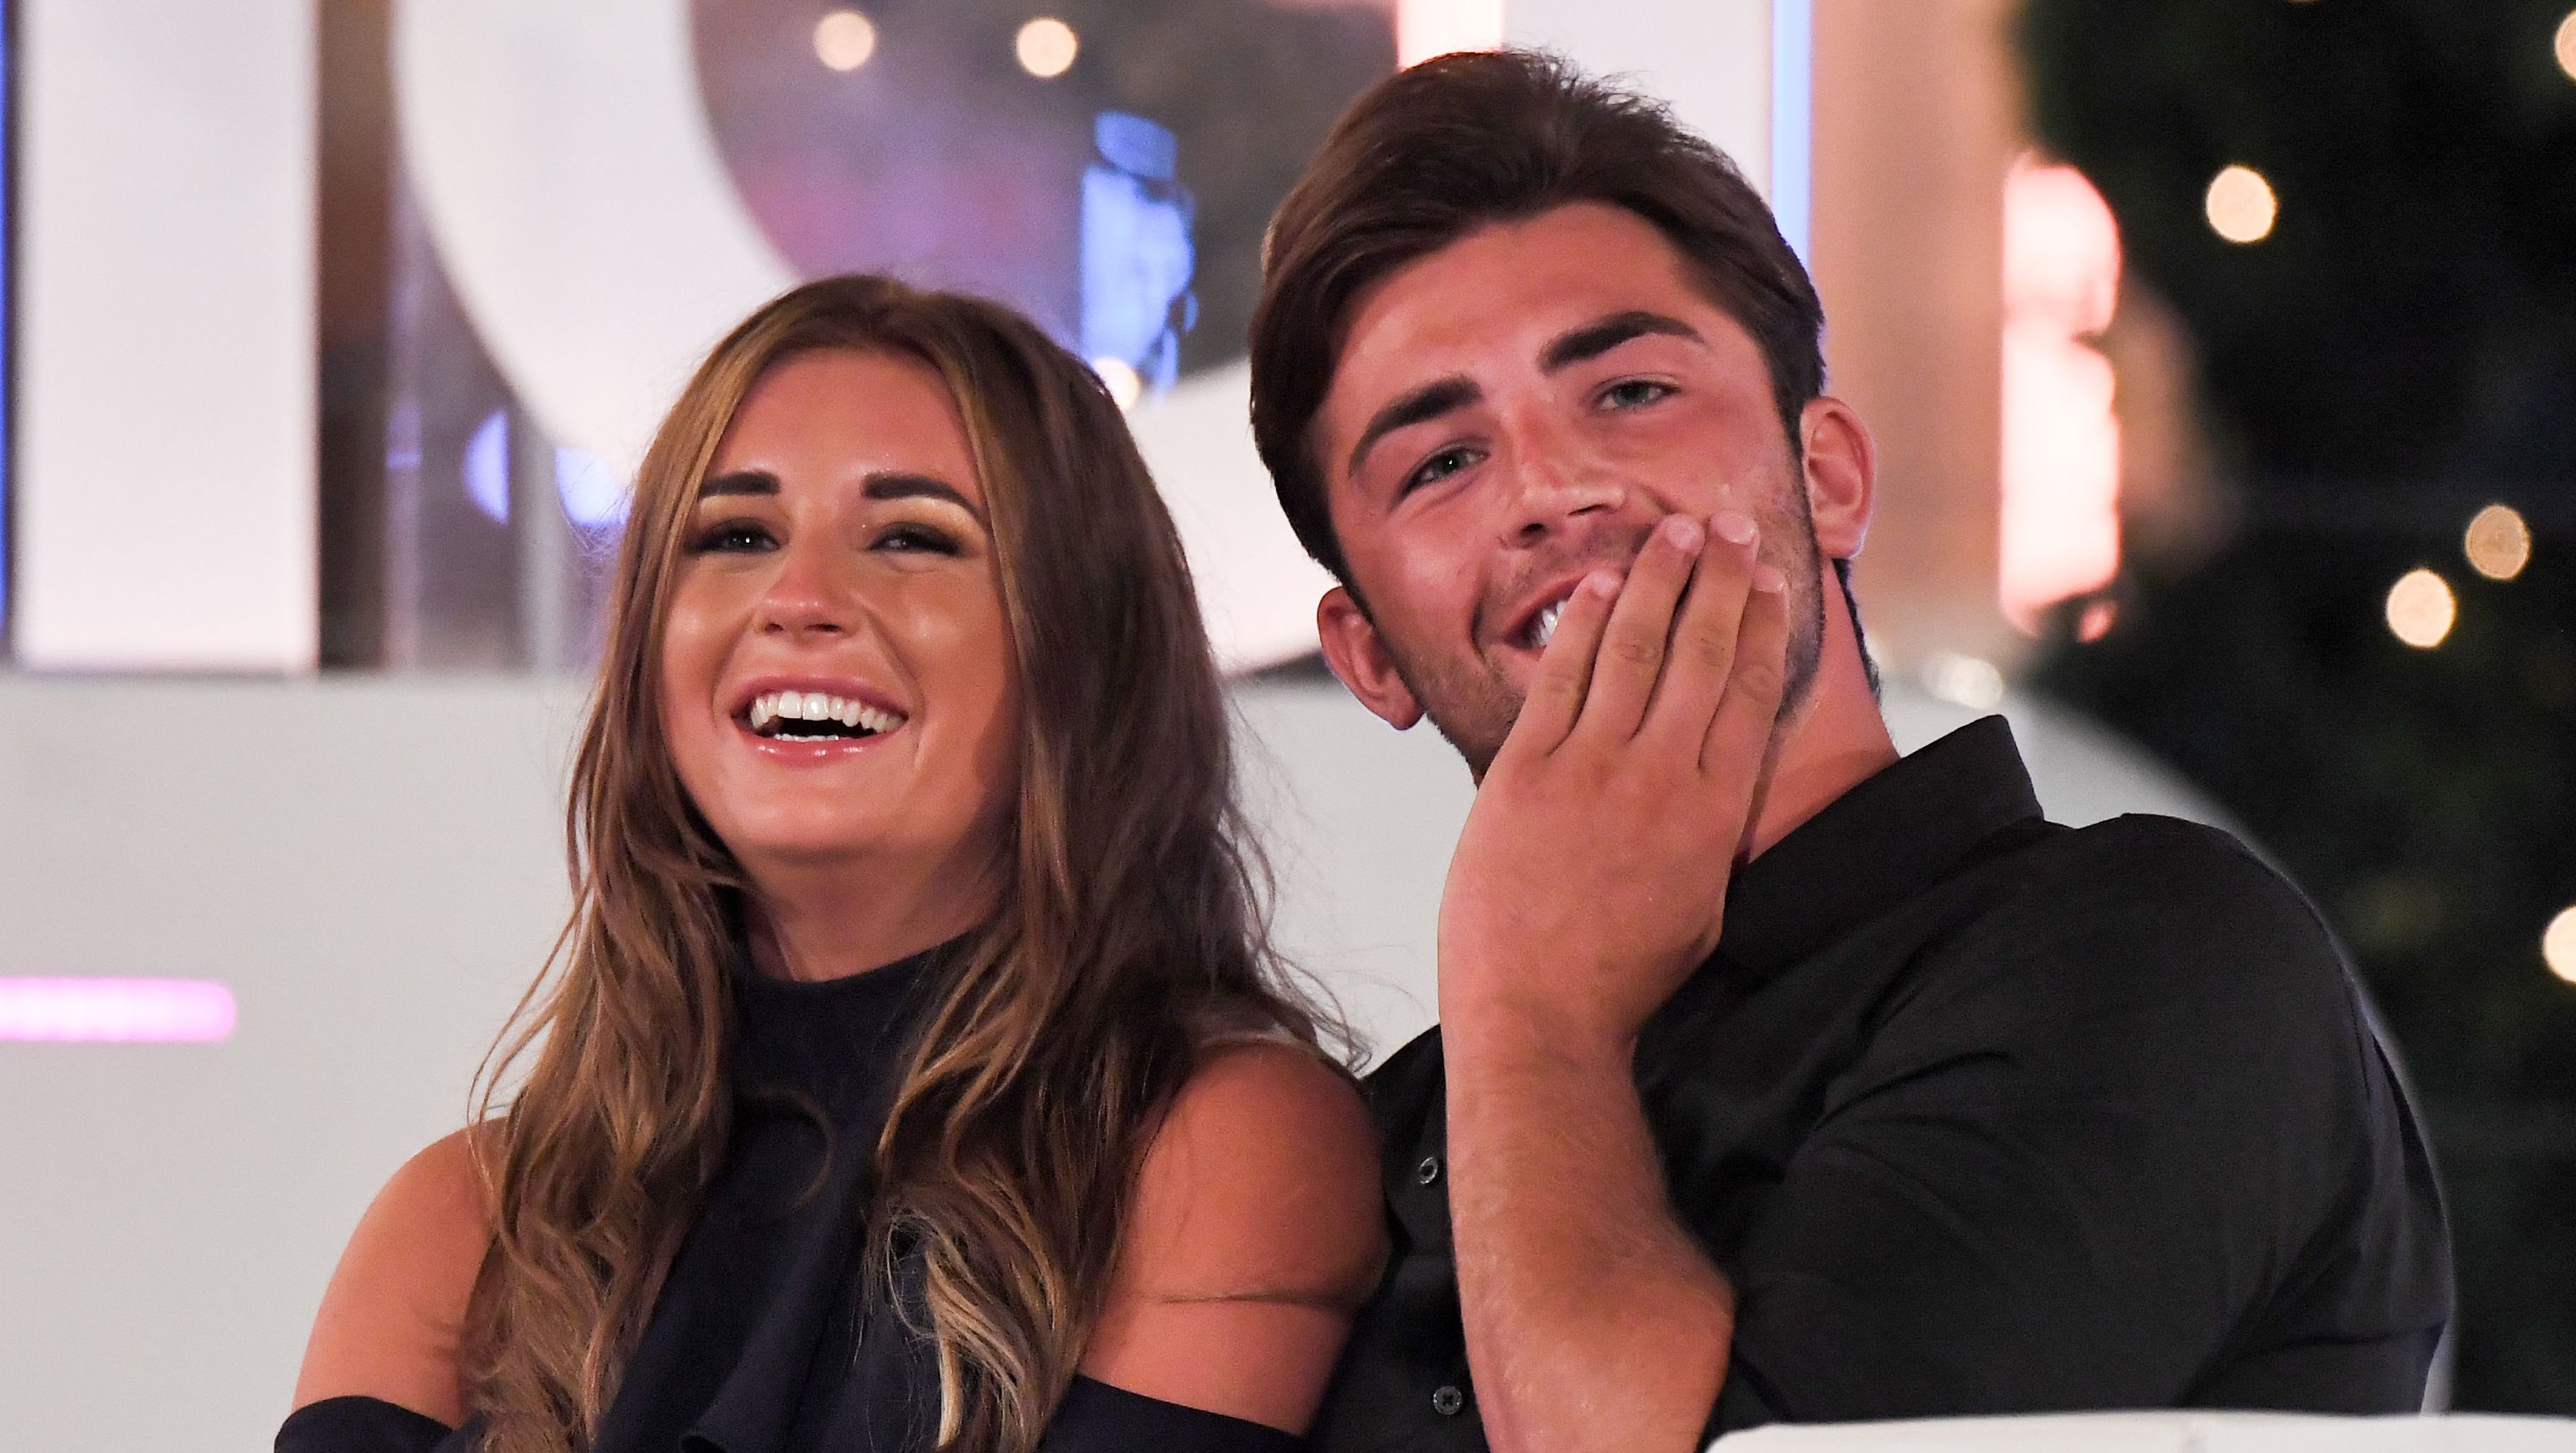 Love Island's Jack shares adorable post about Dani as she meets his family